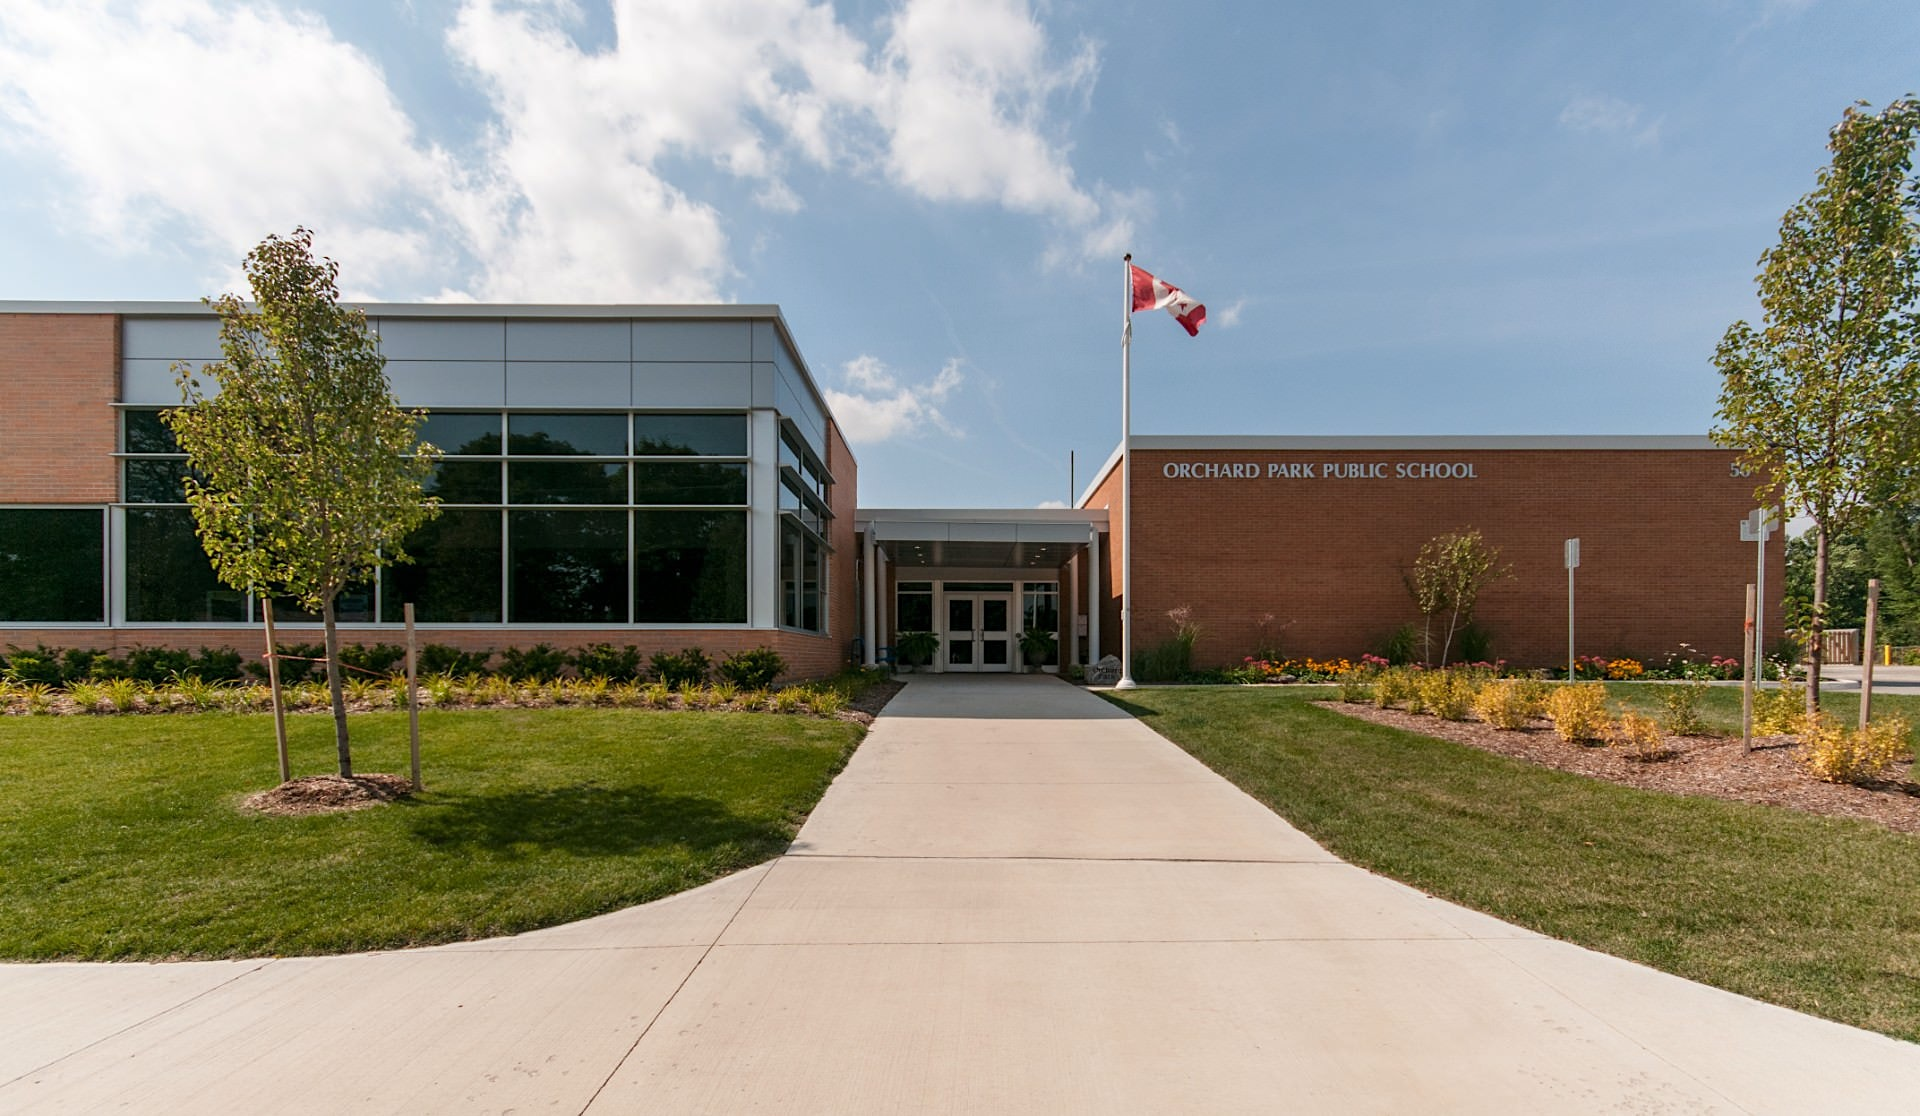 Orchard Park Public School Architectural Photography Gallery by Scott Webb